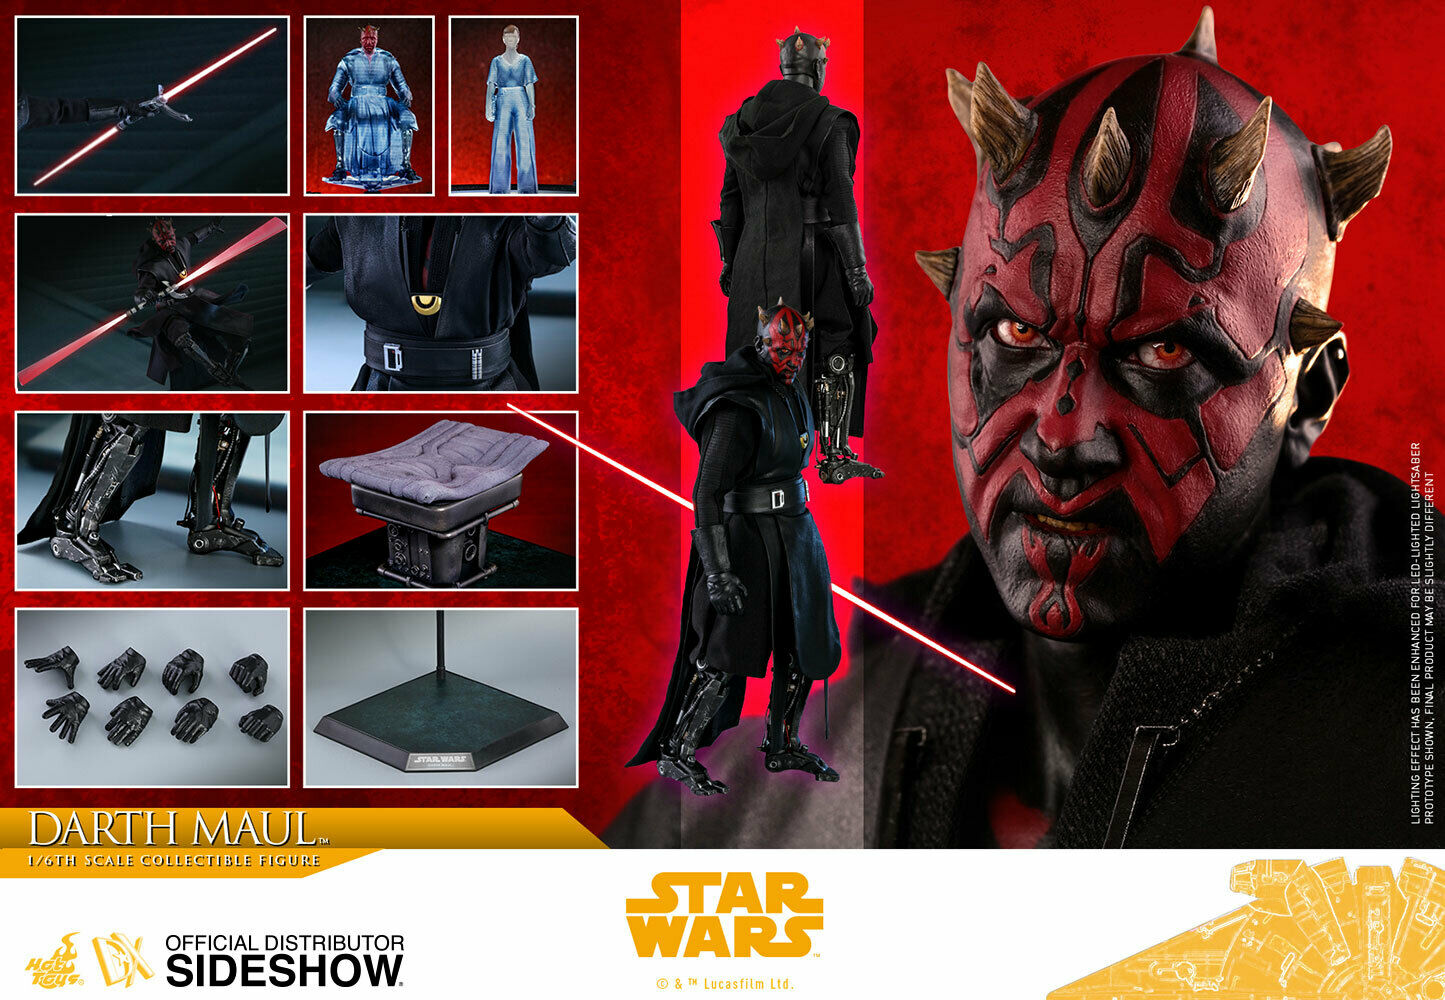 """NEW HOT TOYS 12"""" STAR WARS SOLO ASWS DARTH MAUL DELUXE SERIES 1/6 SCALE FIG DX18 on eBay thumbnail"""